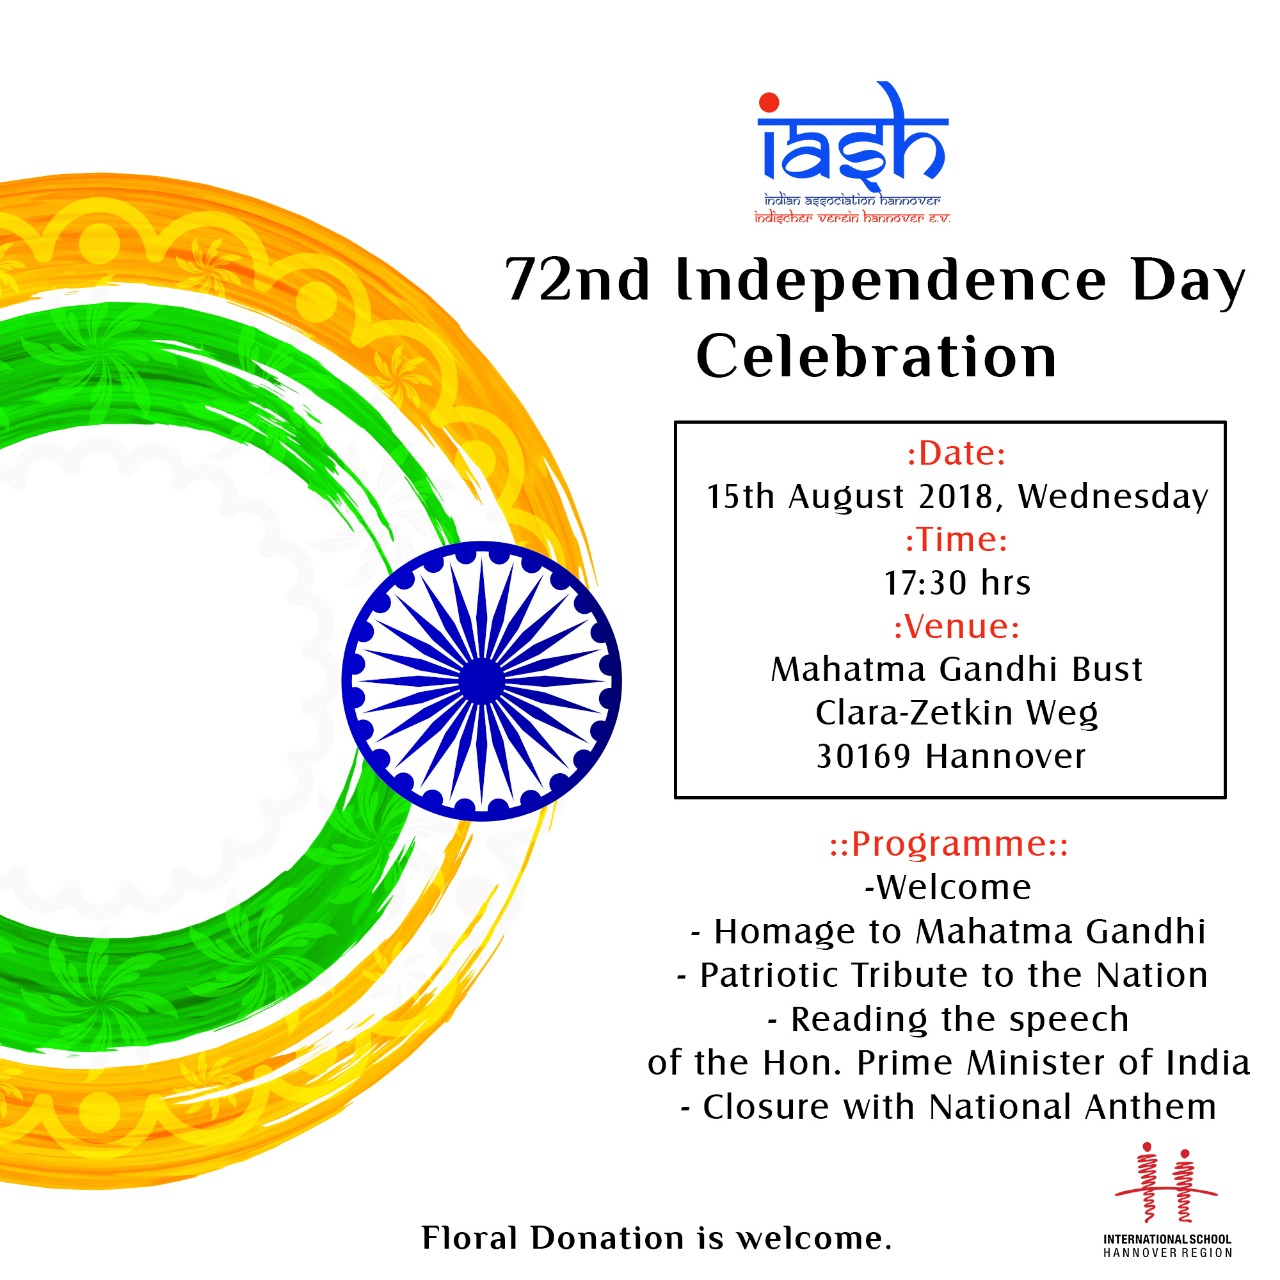 72nd Independence Day of India Celebrations: 15th August